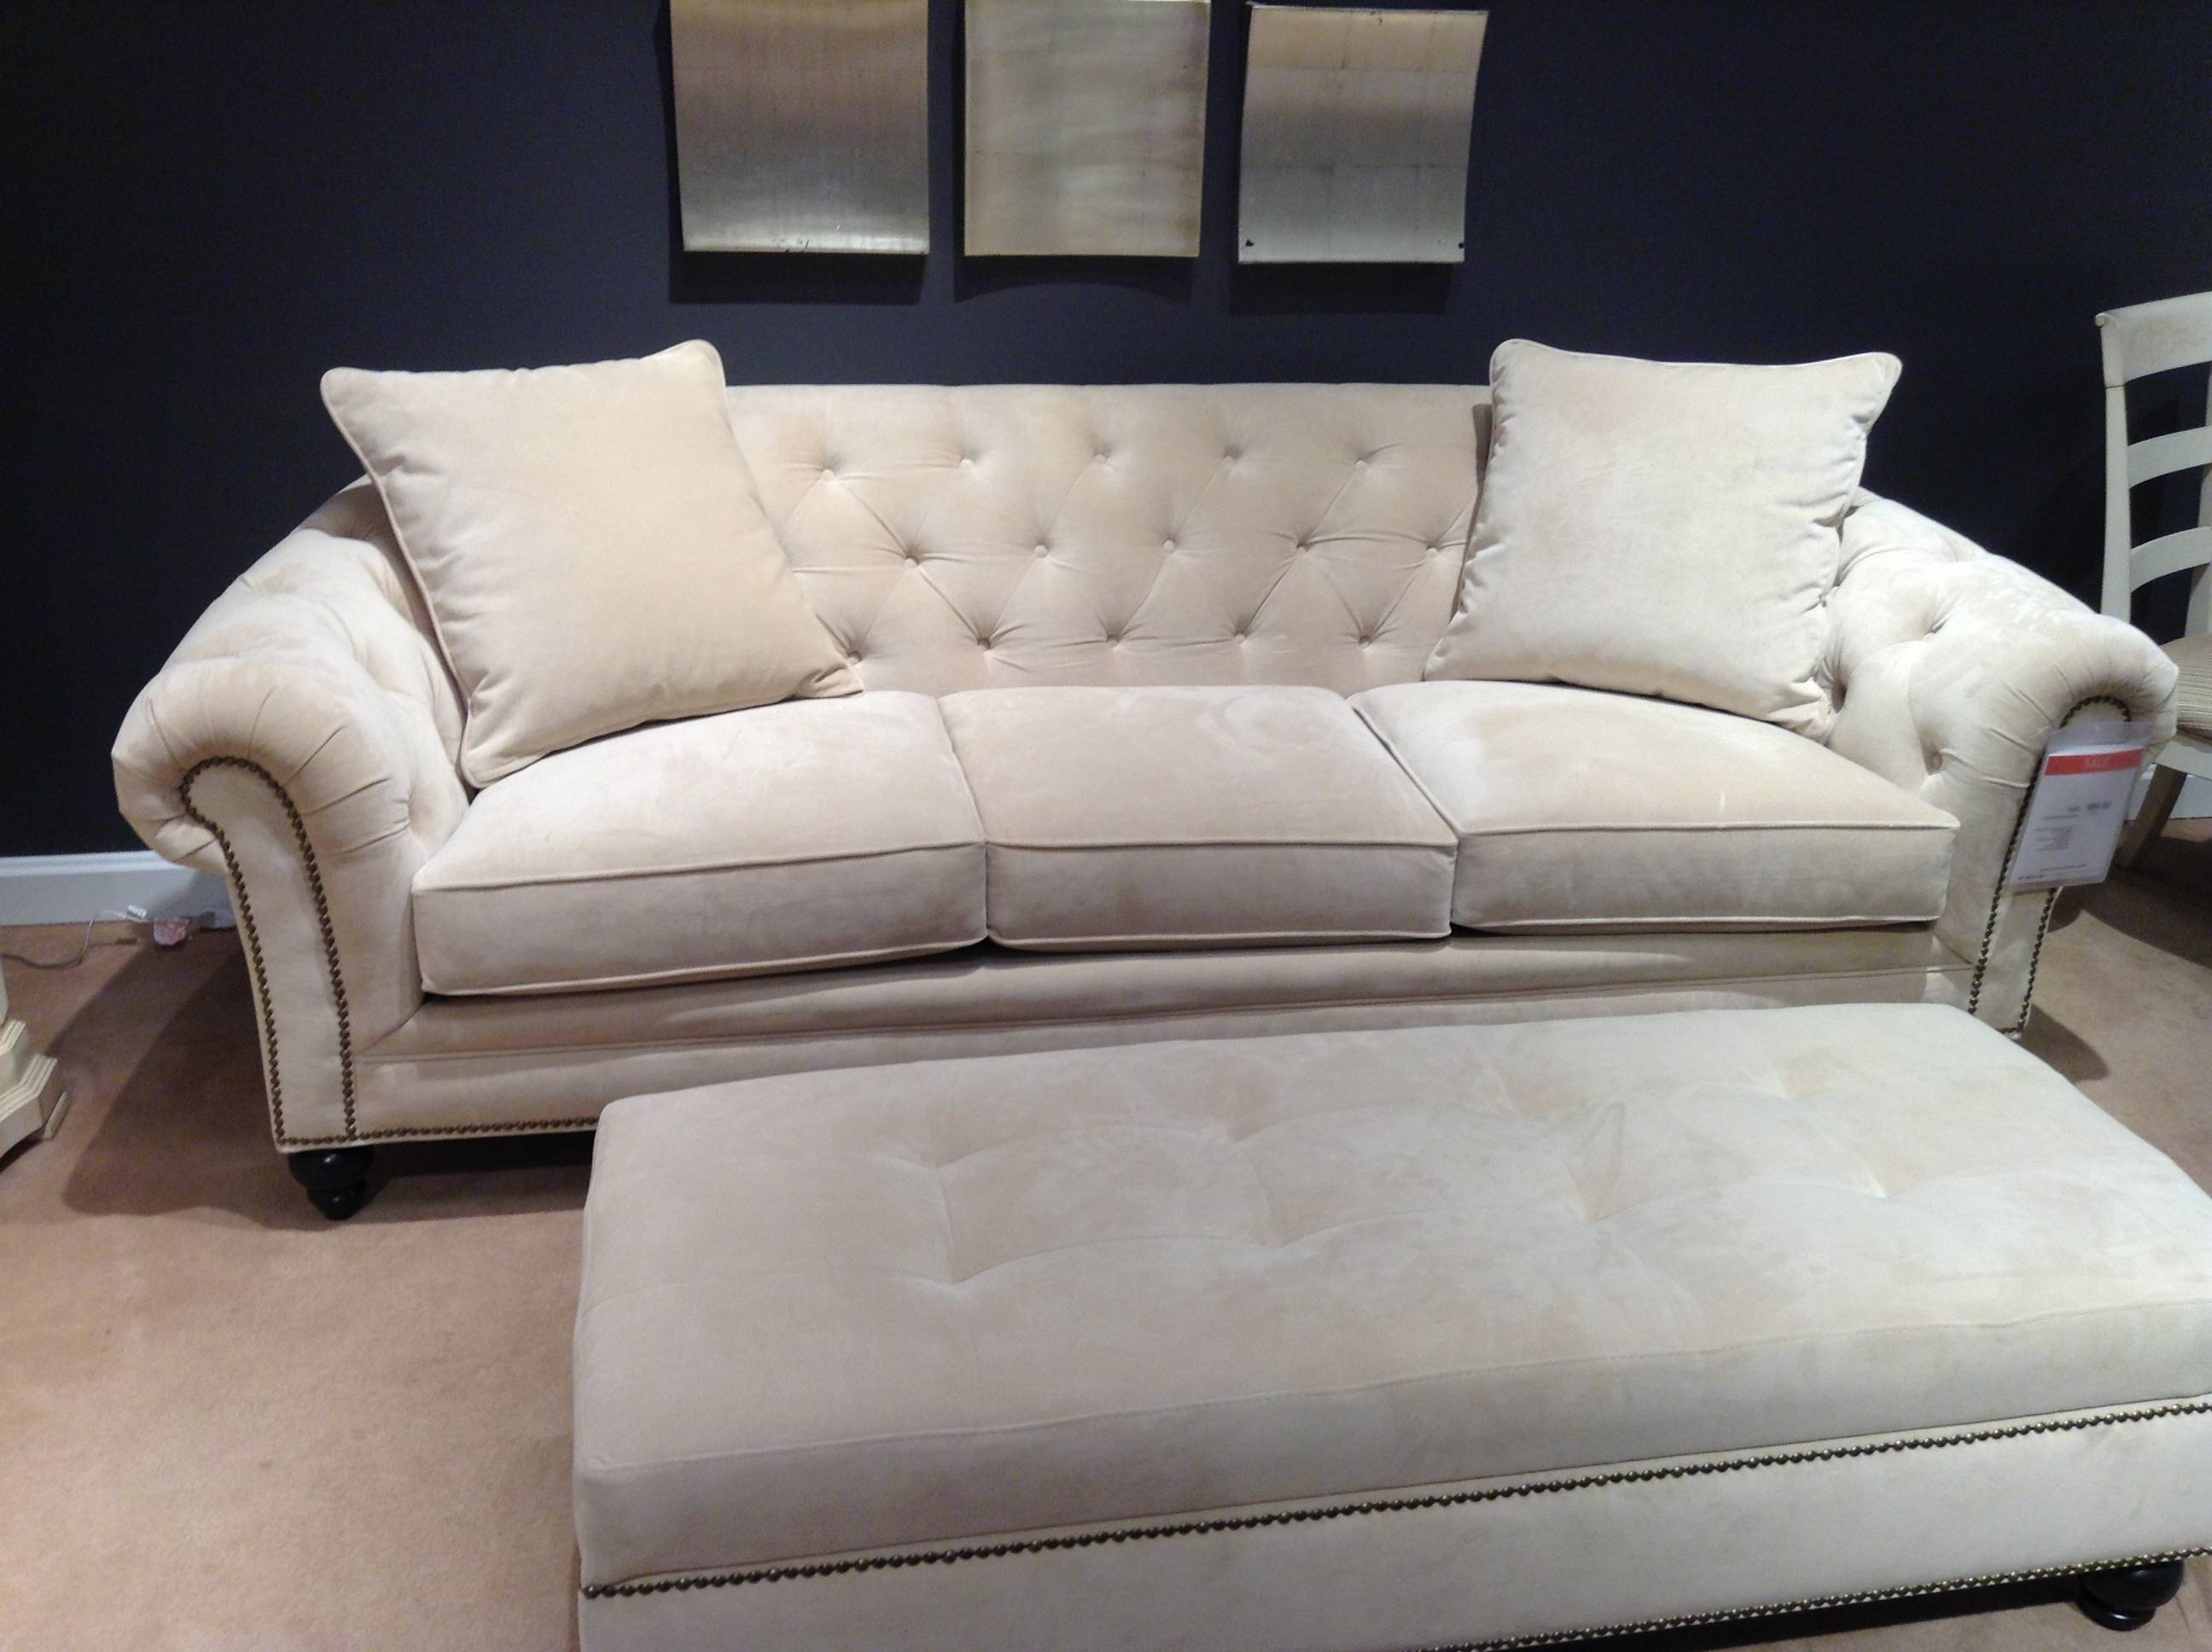 Sofas: Best Family Room Furniture Design With Elegant Macys Sofa within Macys Sofas (Image 24 of 25)